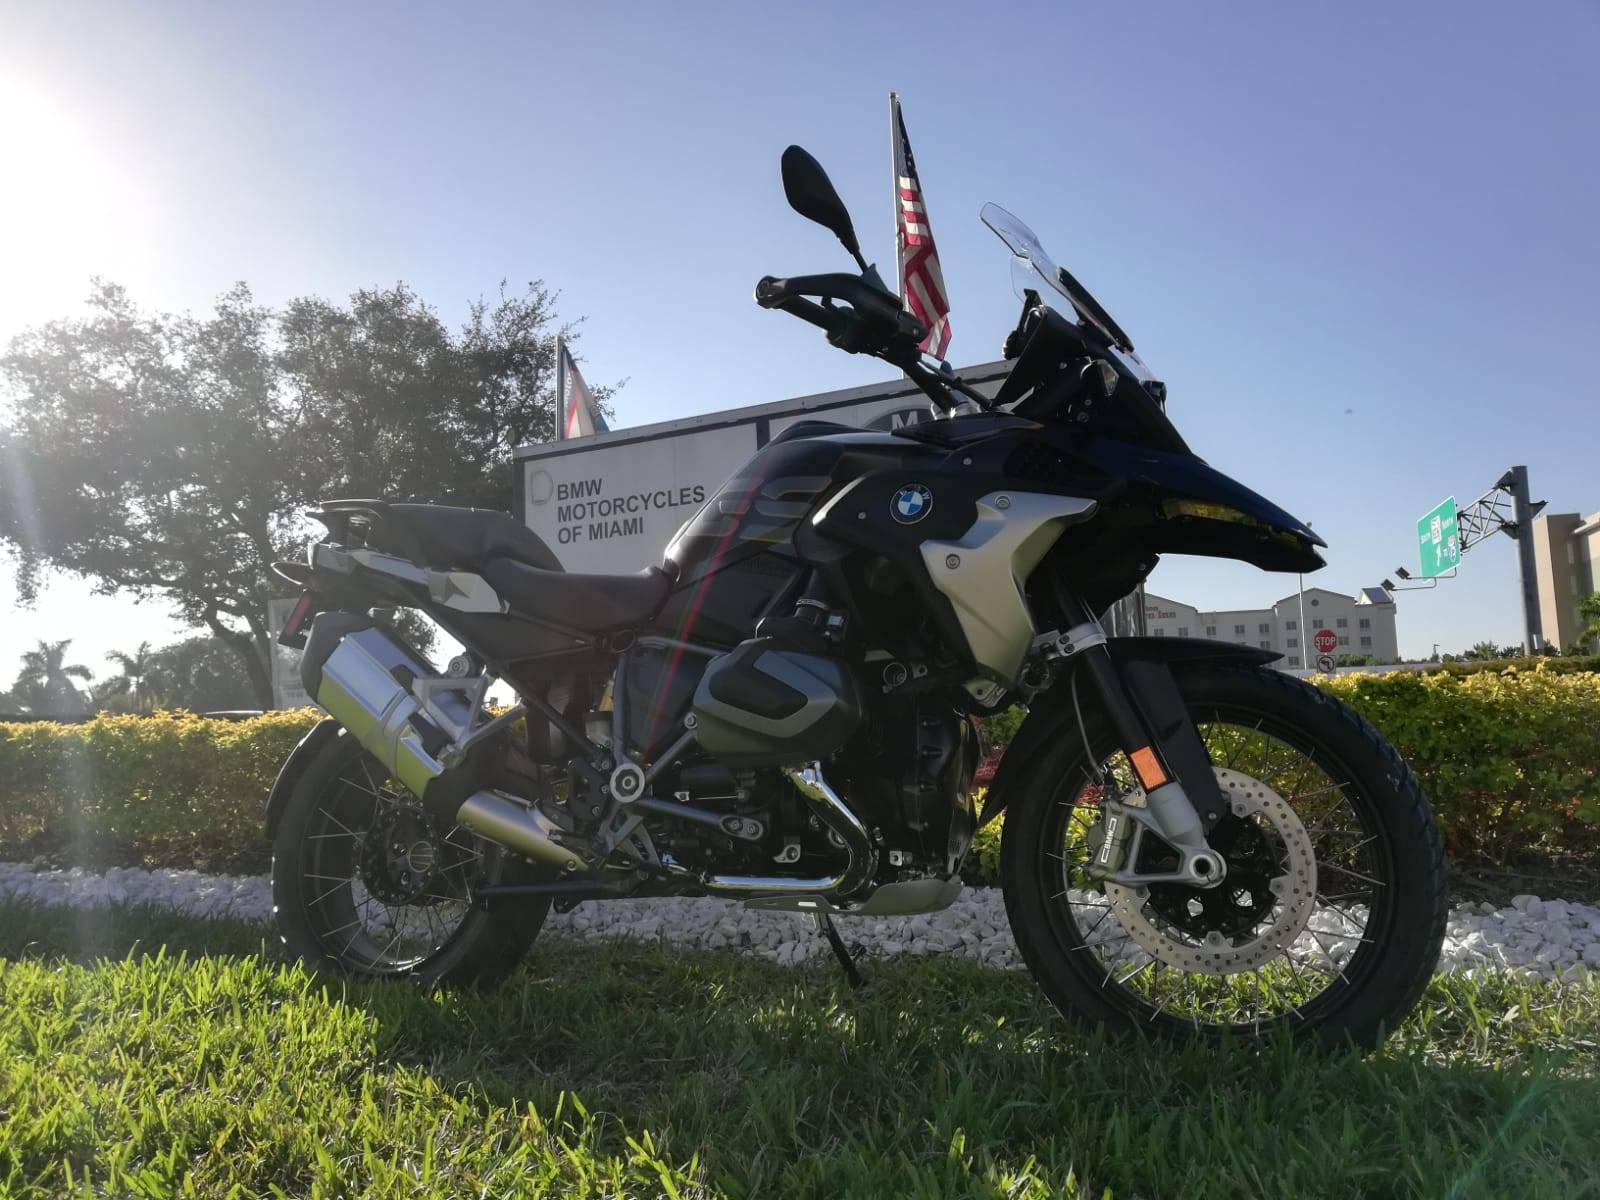 New 2019 BMW R 1250 GS for sale, BMW R 1250GS for sale, BMW Motorcycle GS, new BMW GS, Spirit of GS, BMW Motorcycles of Miami, Motorcycles of Miami, Motorcycles Miami, New Motorcycles, Used Motorcycles, pre-owned. #BMWMotorcyclesOfMiami #MotorcyclesOfMiami. - Photo 14